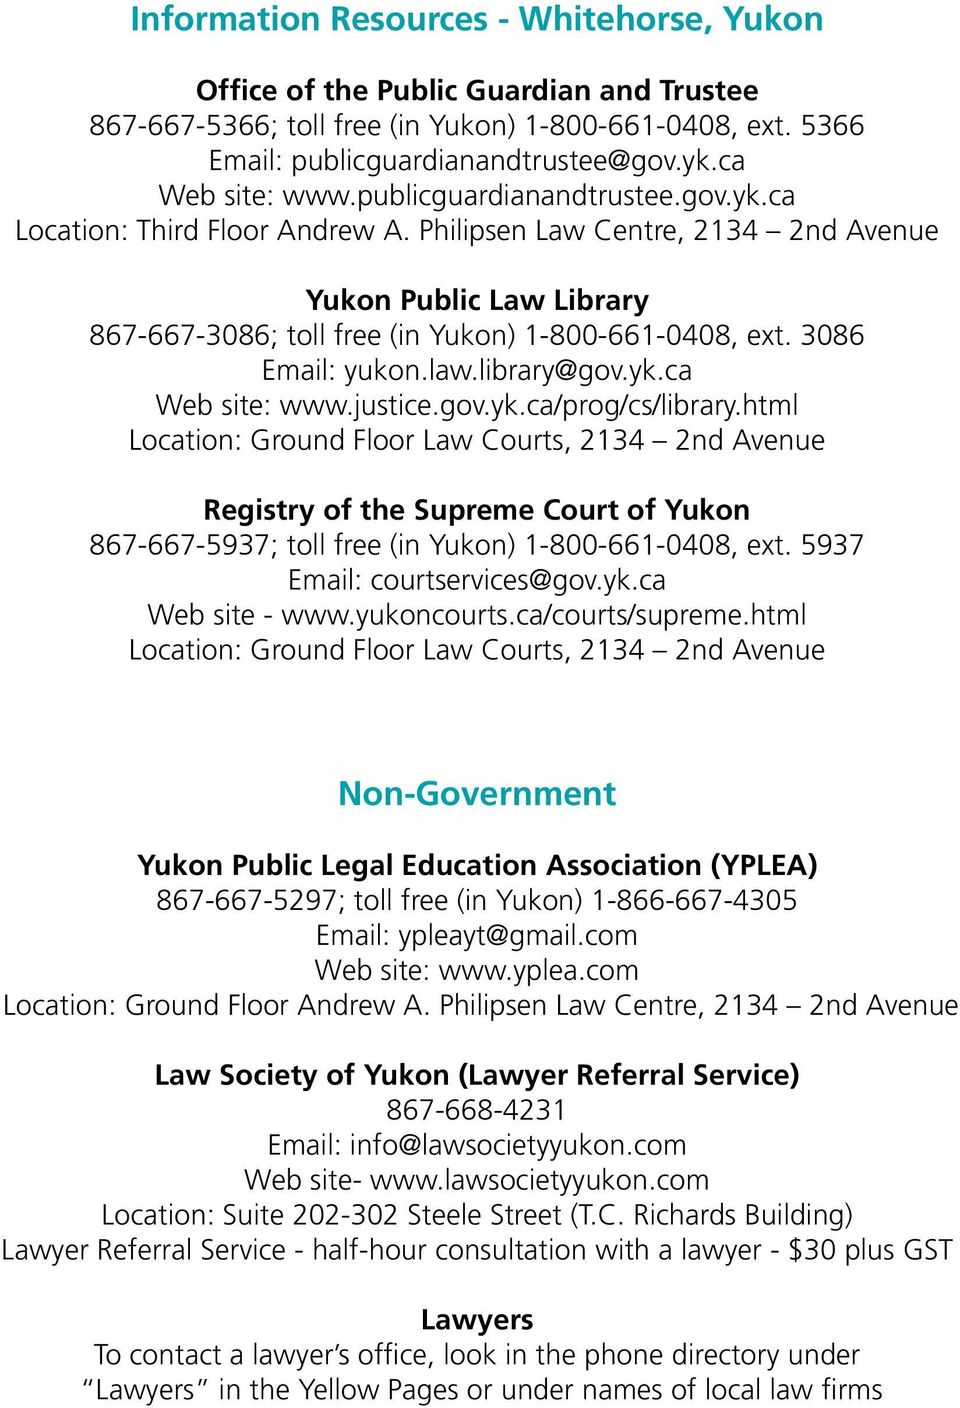 Philipsen Law Centre, 2134 2nd Avenue Yukon Public Law Library 867-667-3086; toll free (in Yukon) 1-800-661-0408, ext. 3086 Email: yukon.law.library@gov.yk.ca Web site: www.justice.gov.yk.ca/prog/cs/library.